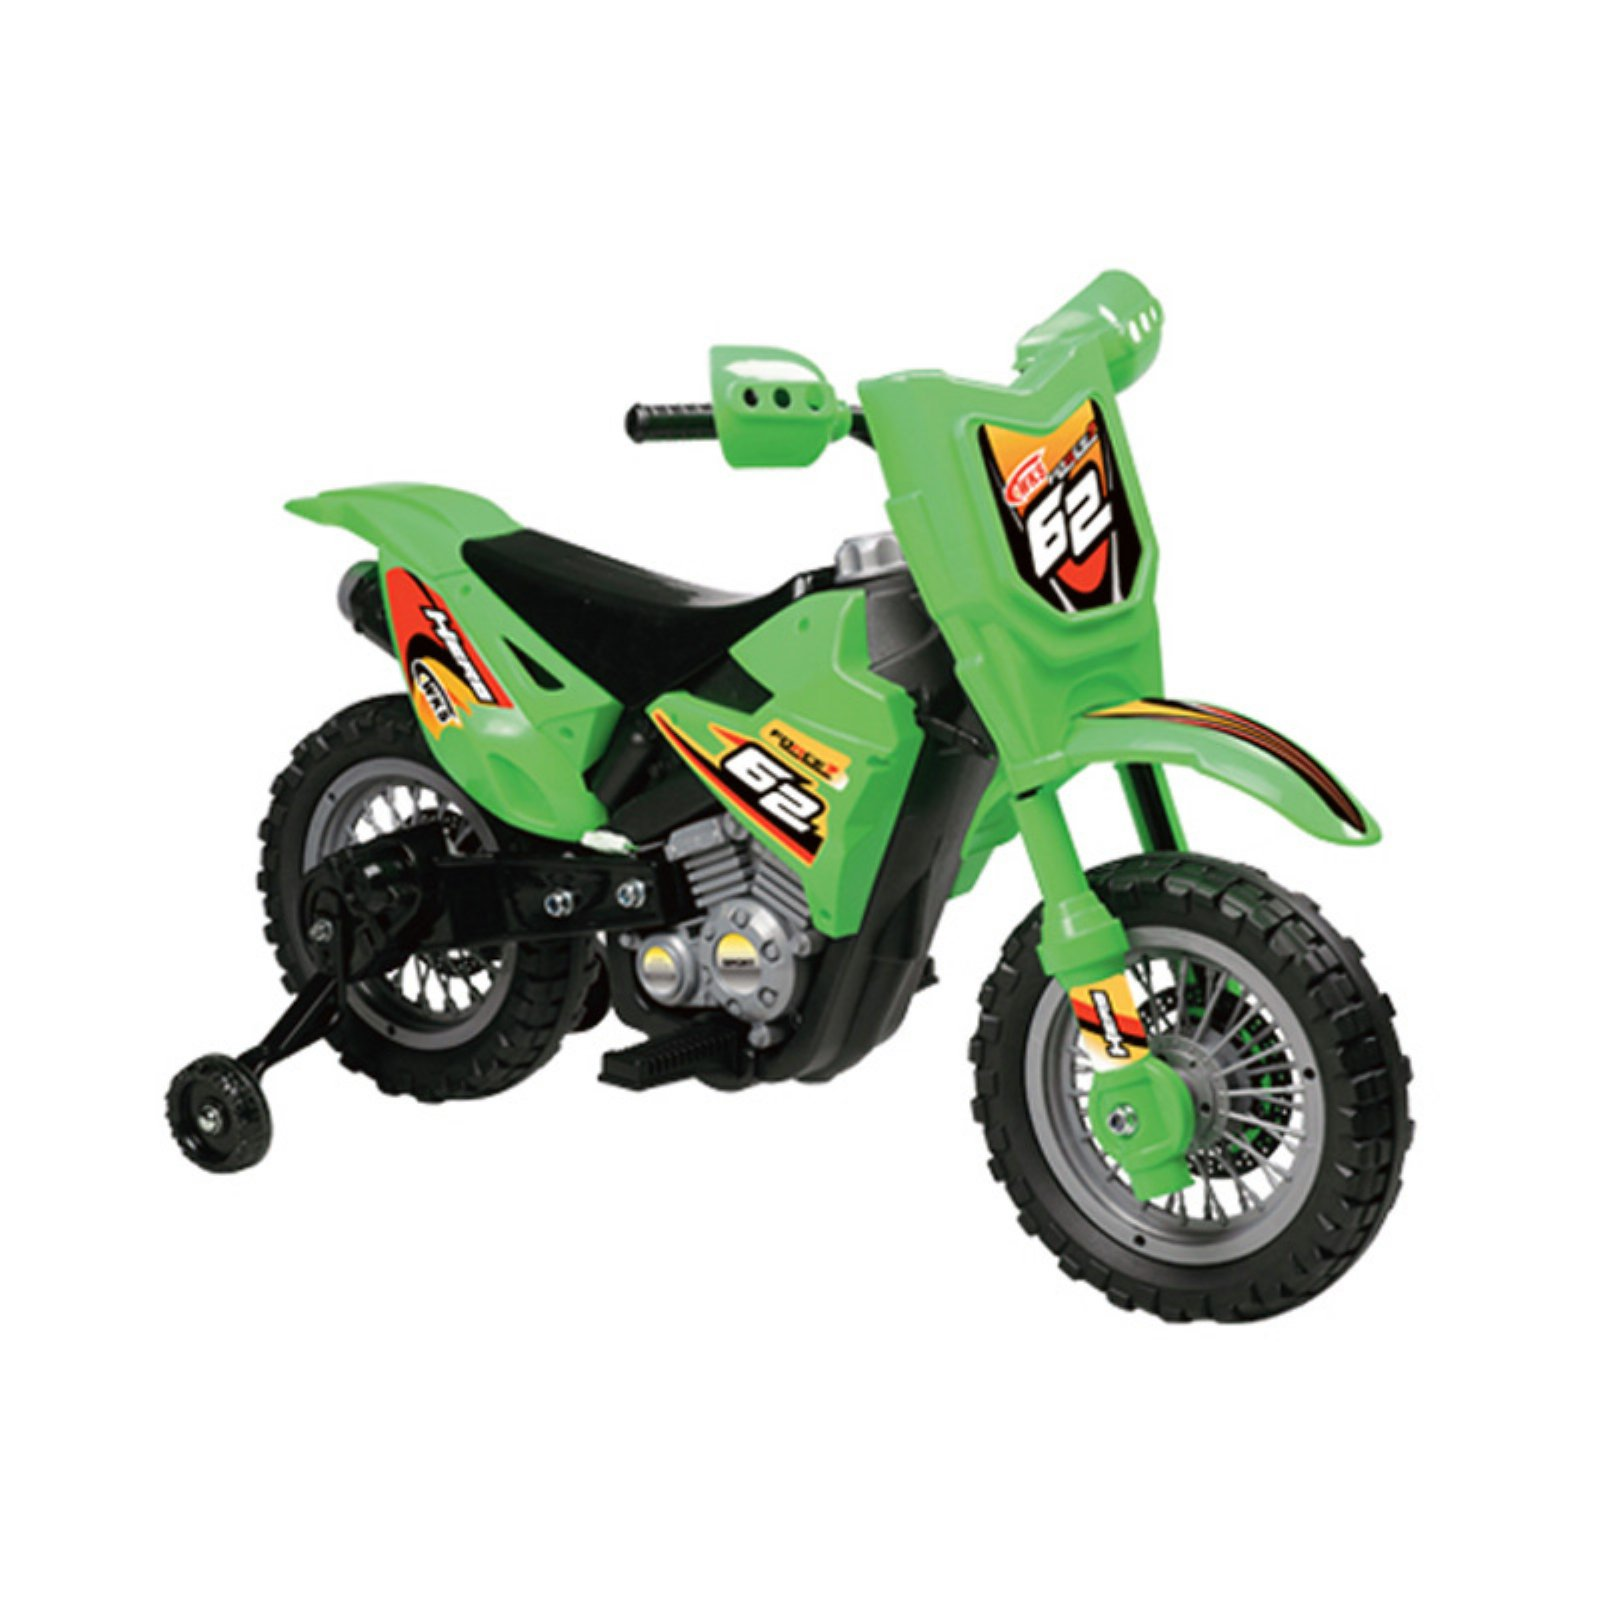 Vroom Rider Dirt Bike Motorcycle Battery Powered Riding